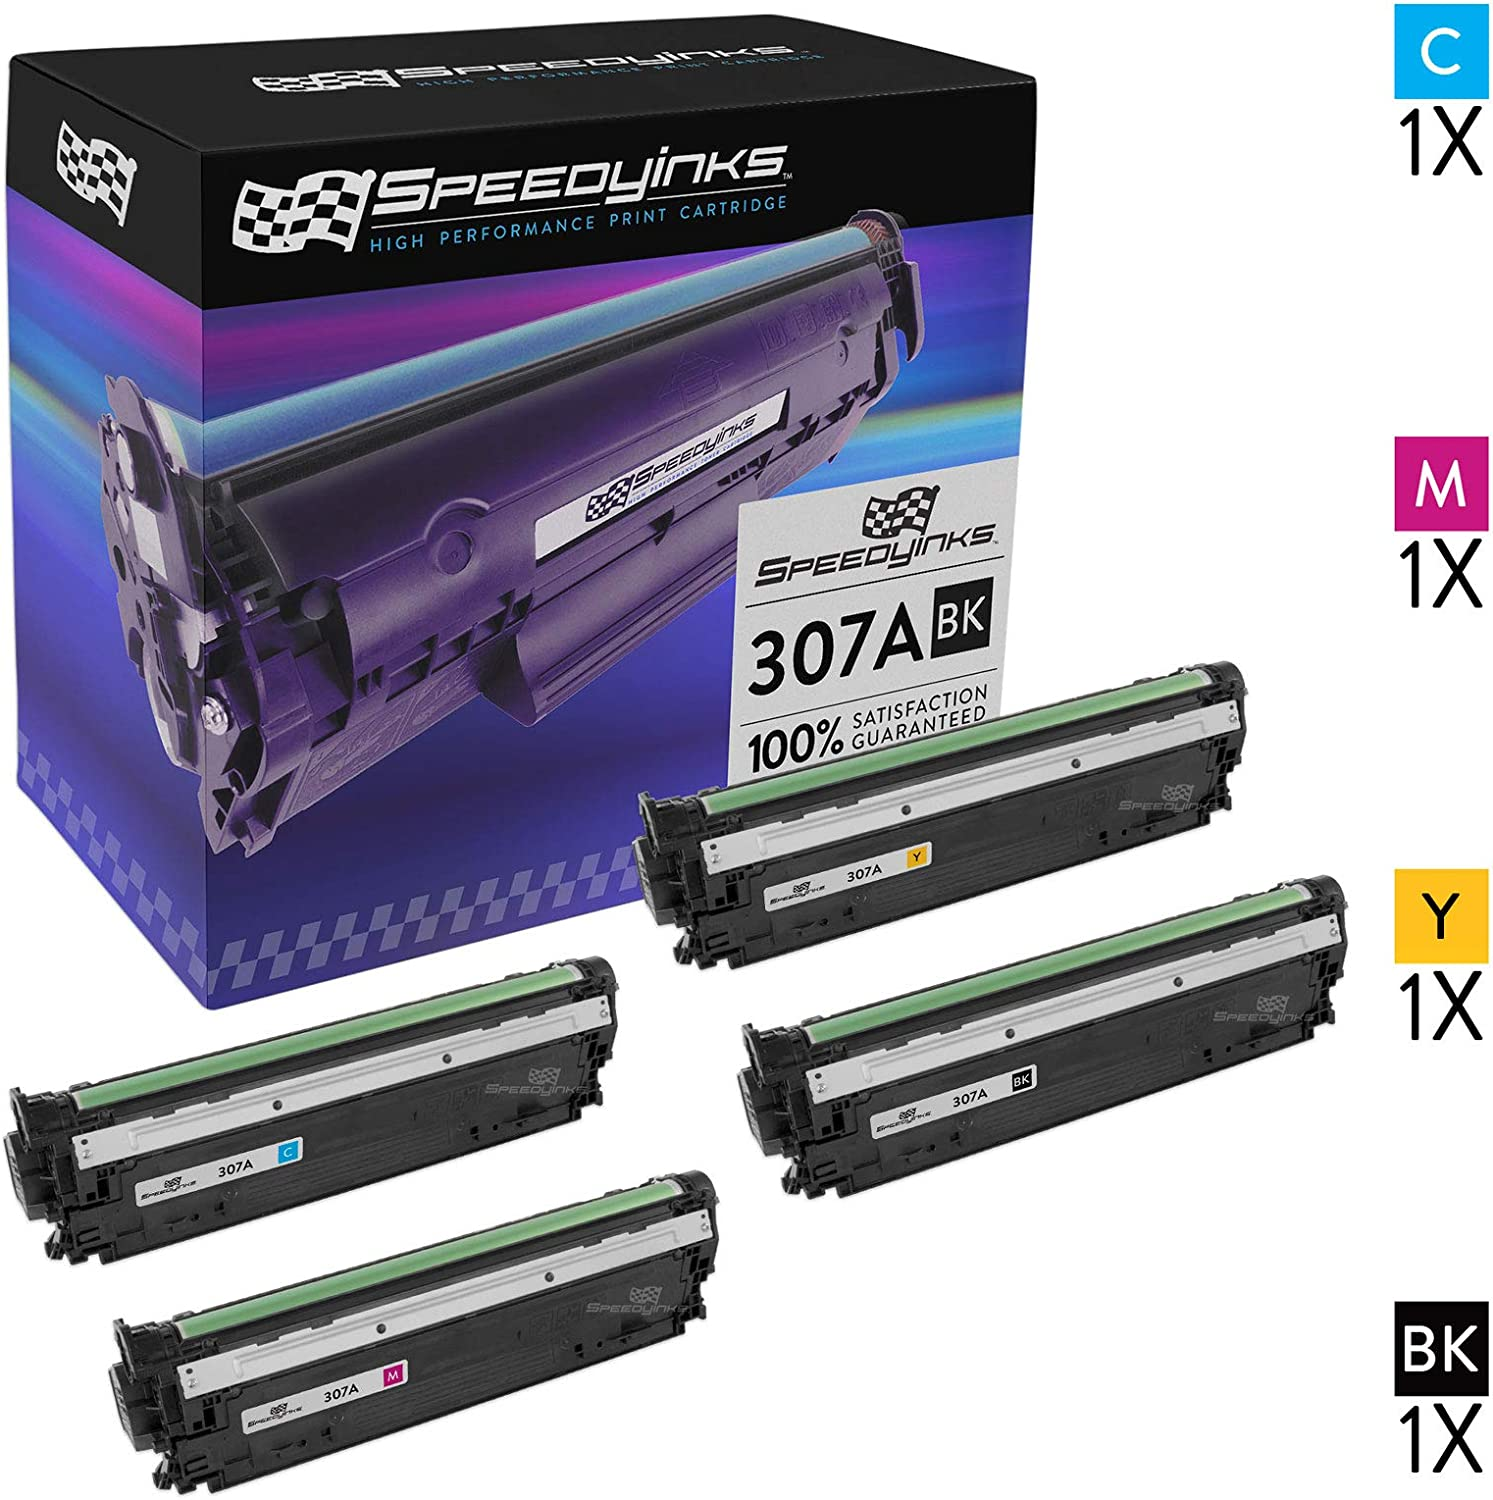 Speedy Inks Remanufactured Toner Cartridge Replacement for HP 307A (1 Black, 1 Cyan, 1 Magenta, 1 Yellow, 4-Pack)